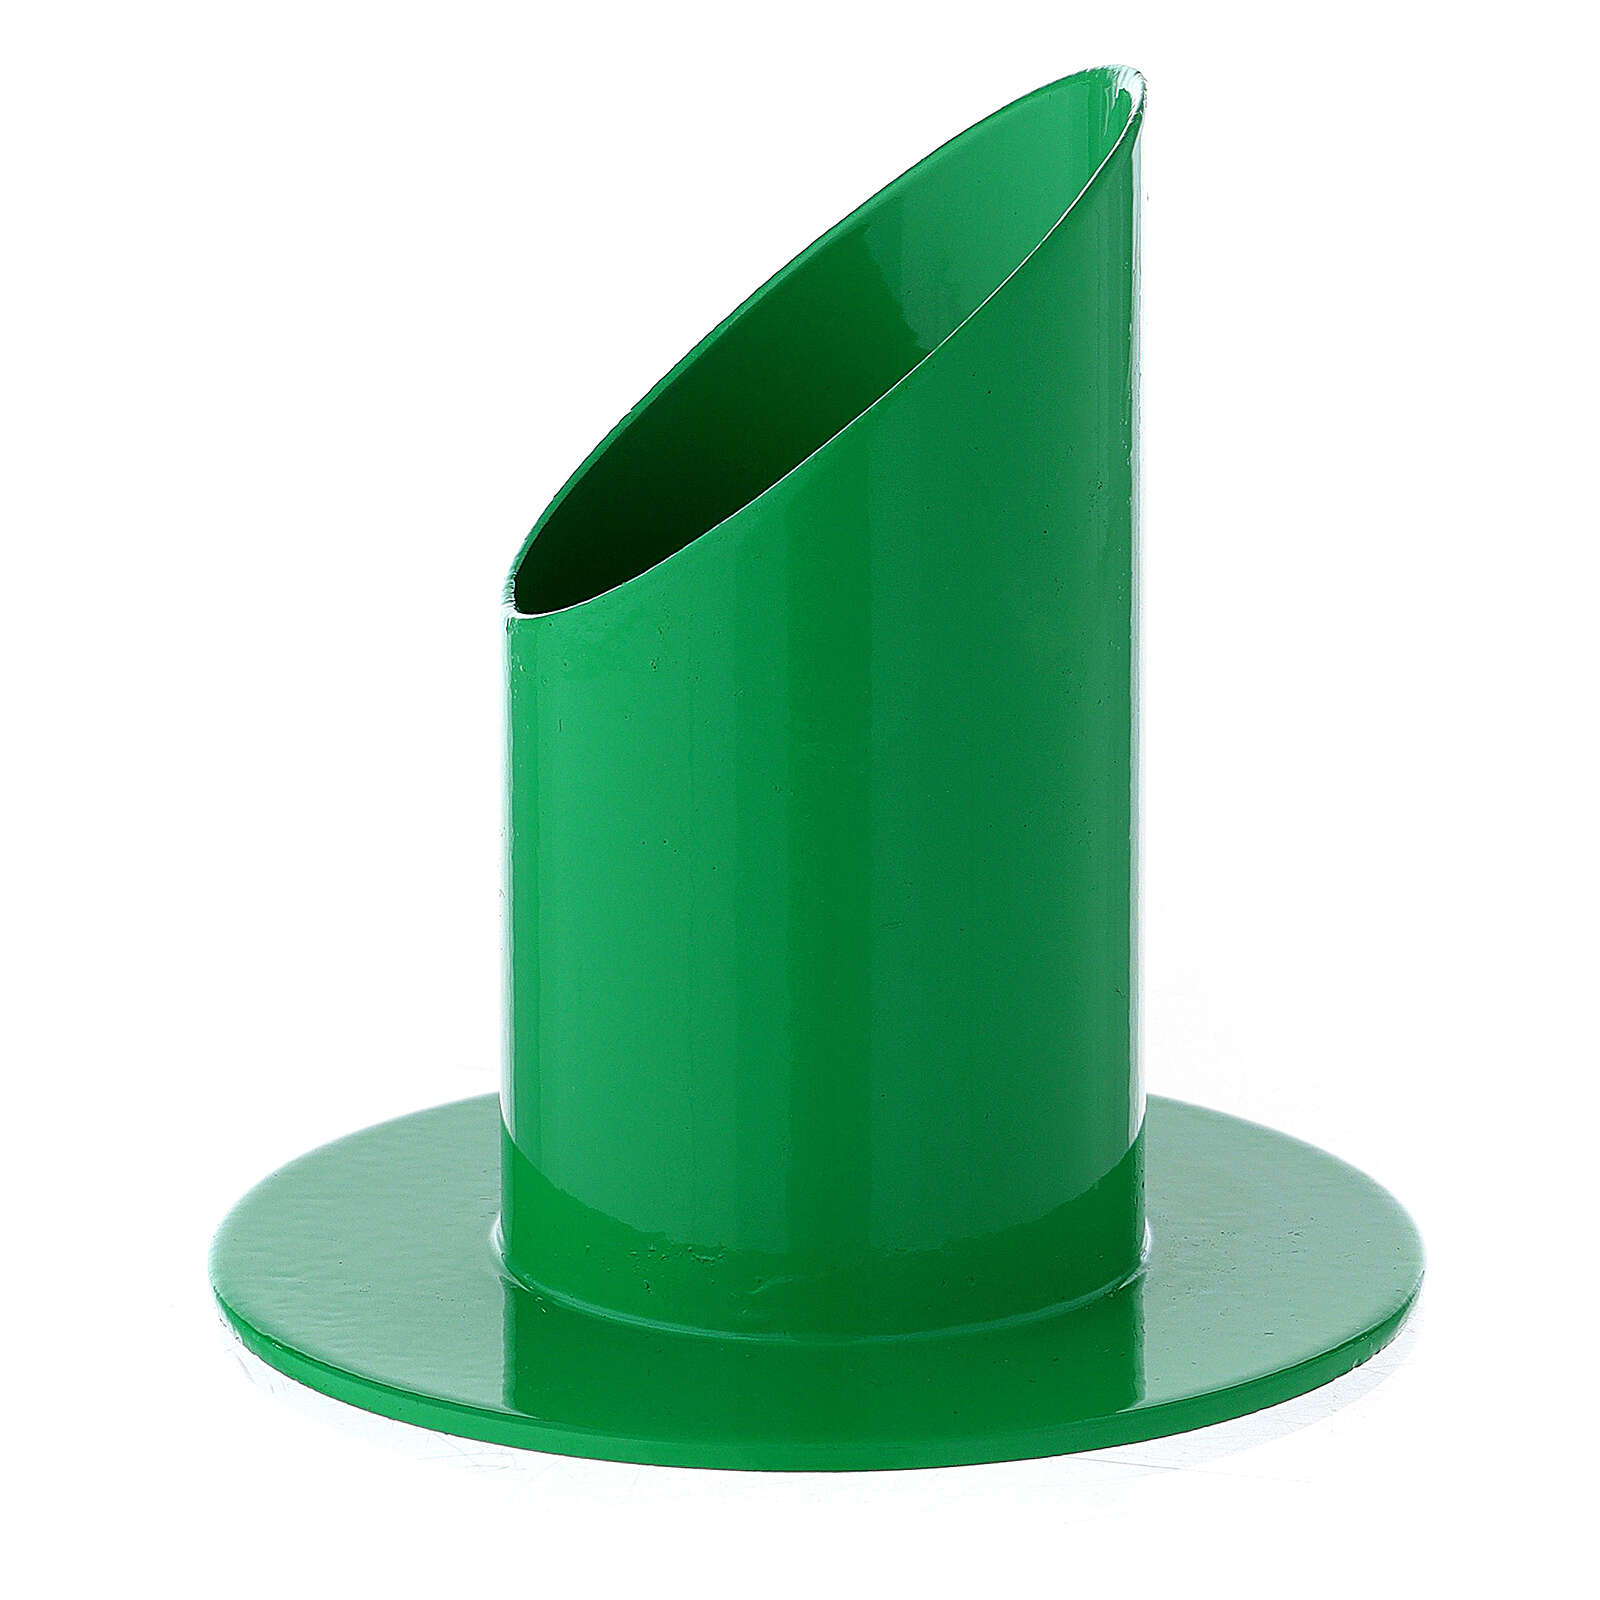 Green metal candle holder 1 1/2 in 3